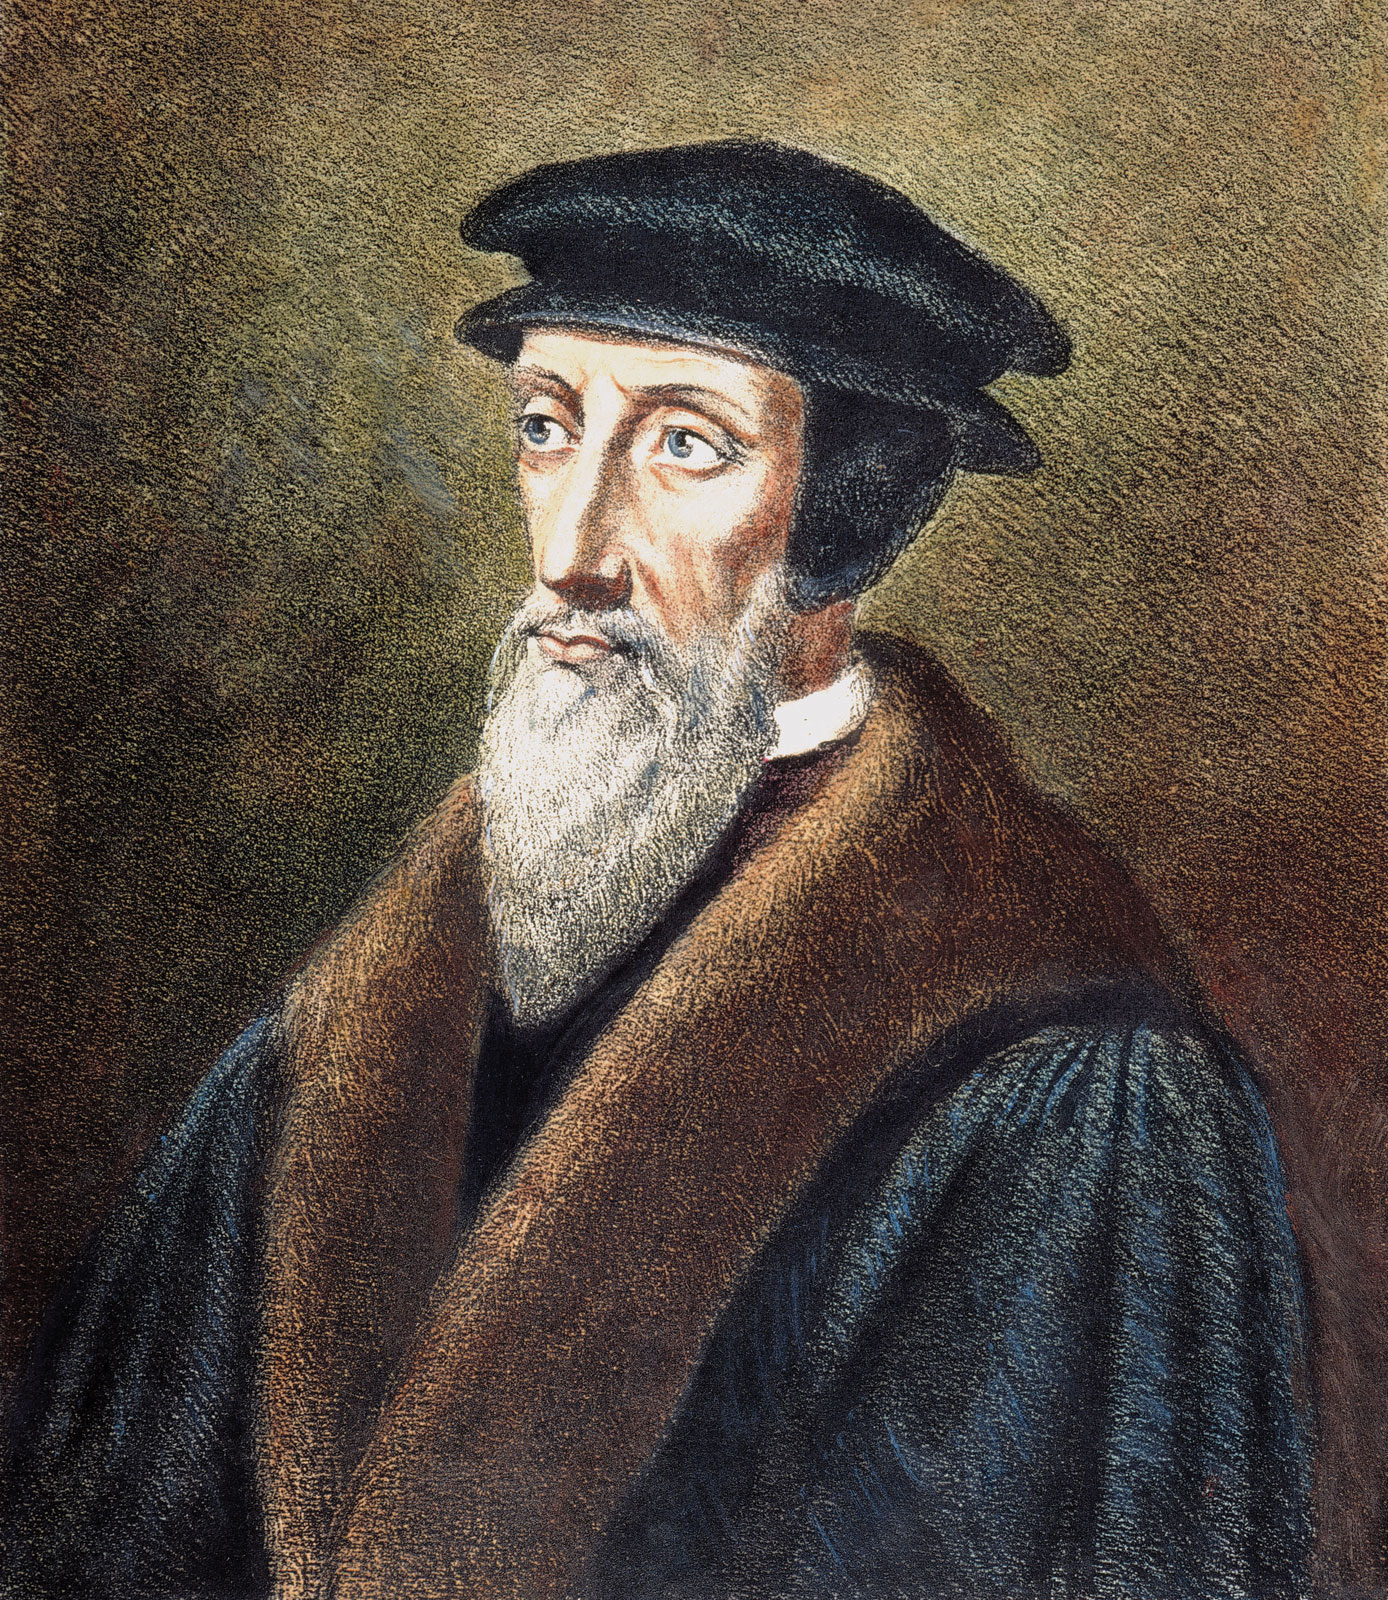 the life and death of john calvin John calvin was responsible for the death of michael servetus related: calvinism refuted on october 27, 1553 john calvin , the founder of calvinism , had michael servetus, the spanish physician, burned at the stake just outside of geneva for his doctrinal beliefs.